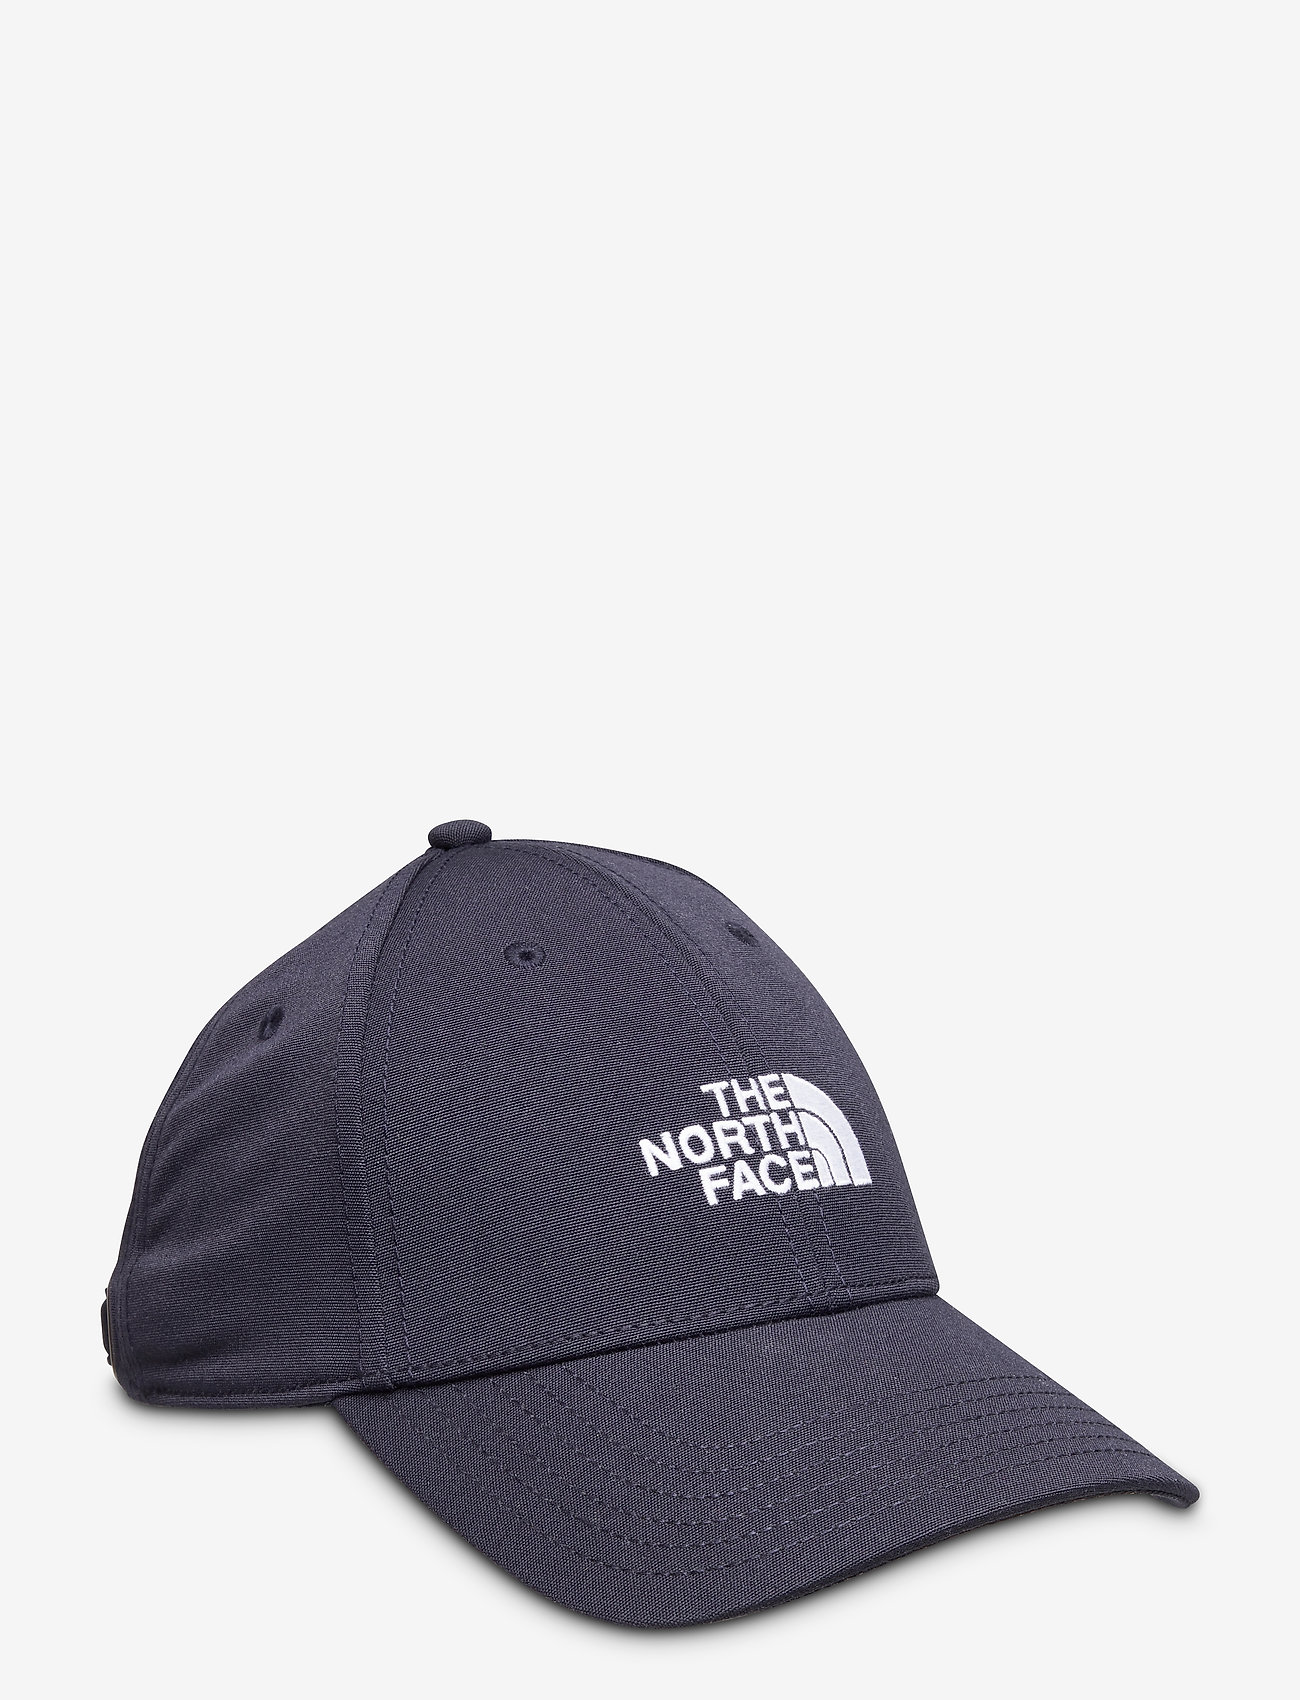 The North Face - RCYD 66 CLASSIC HAT - kasketter - aviator navy - 0